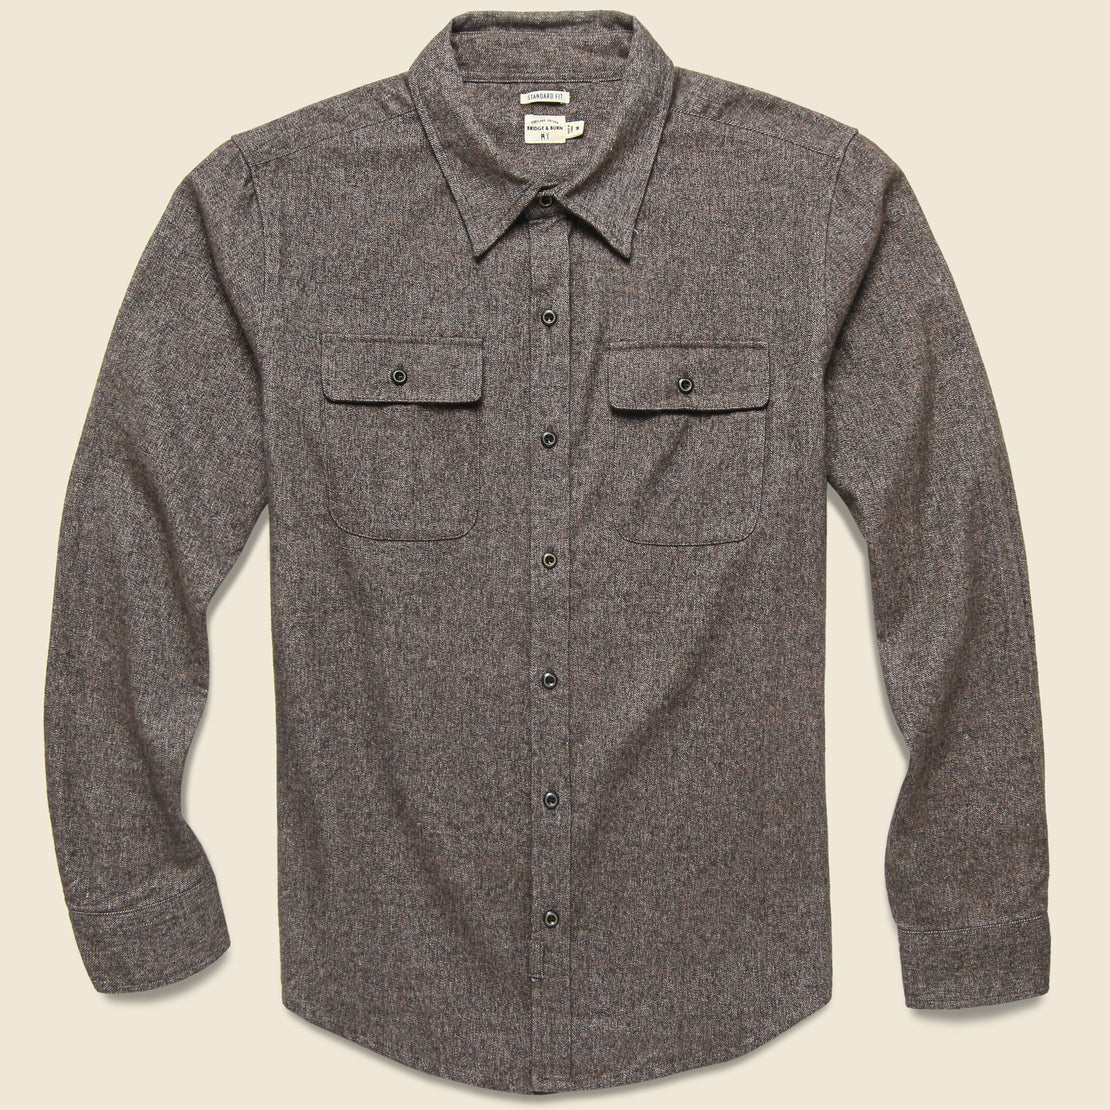 Bridge & Burn Bedford Shirt - Coffee Heather